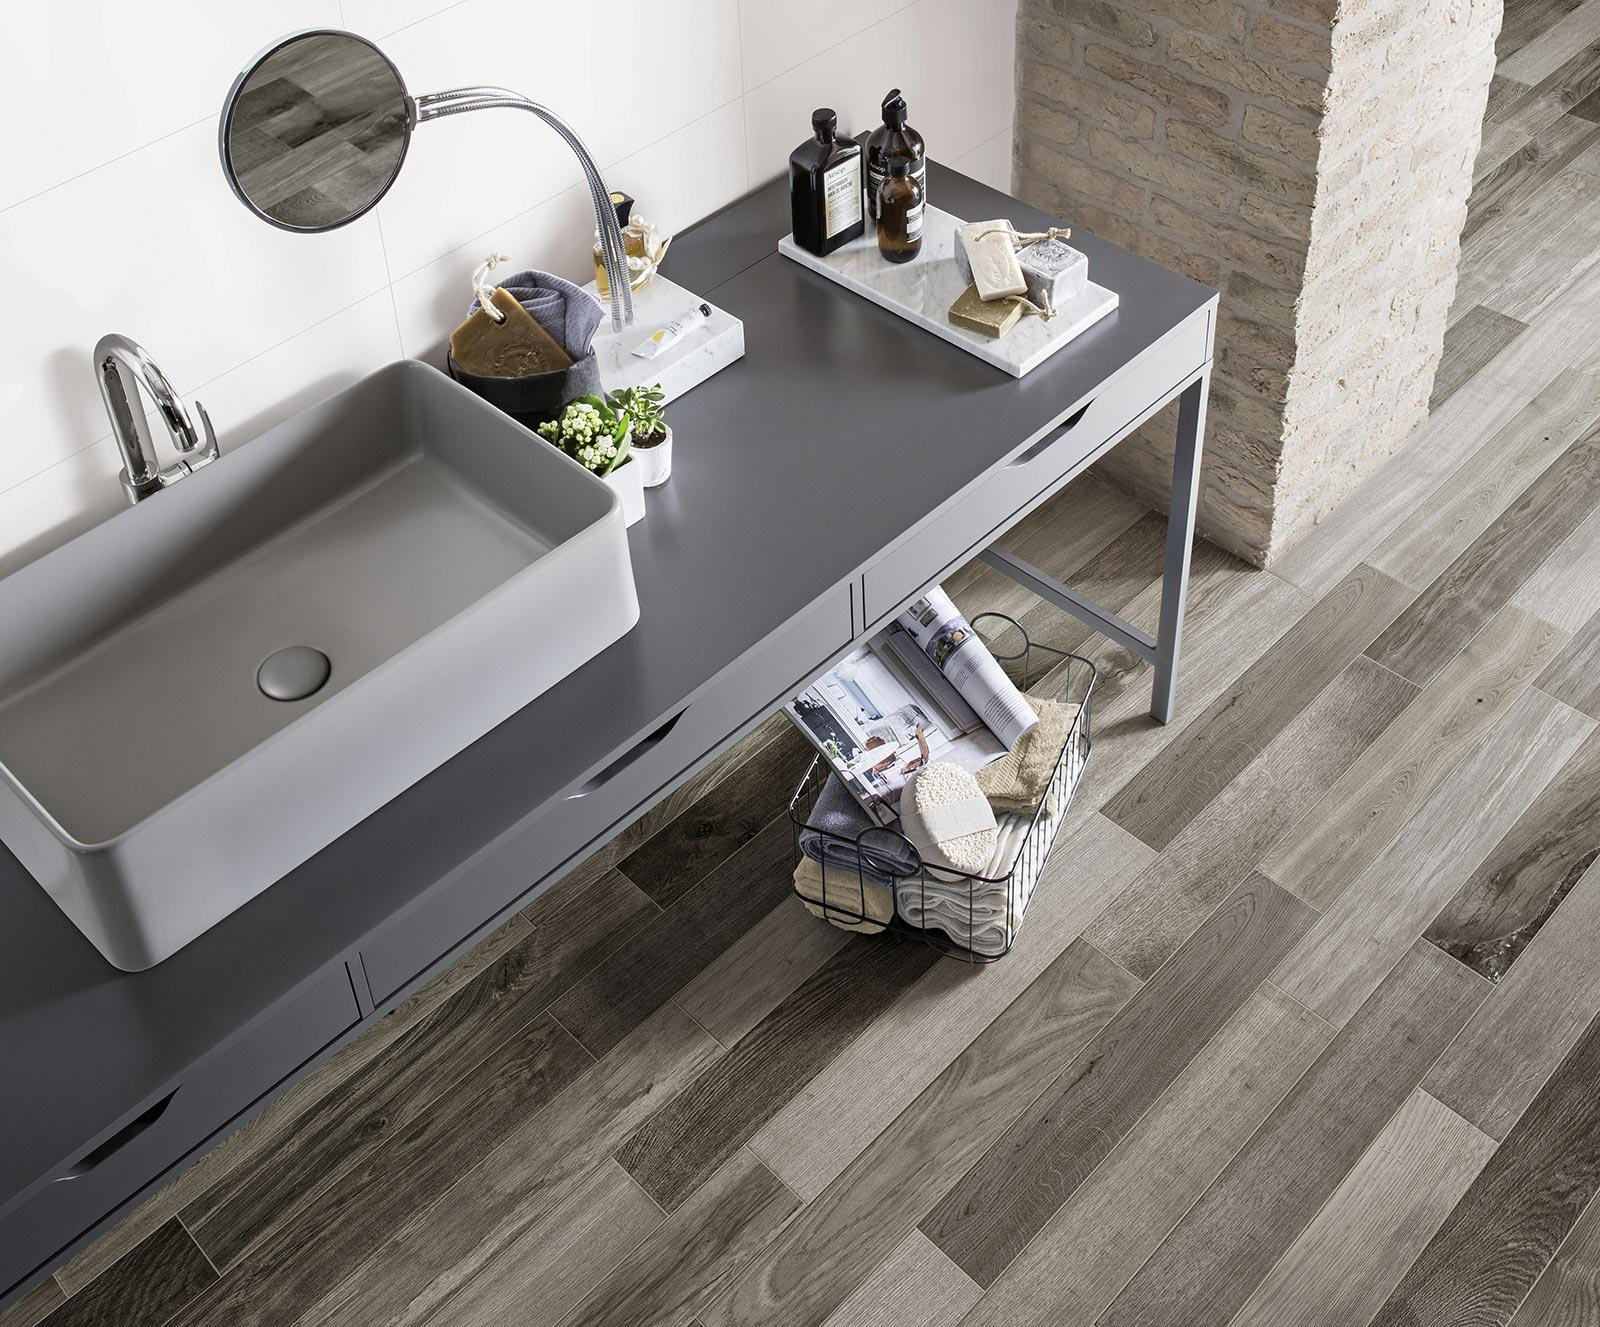 Treverkfusion - Wood Effect - Bathroom